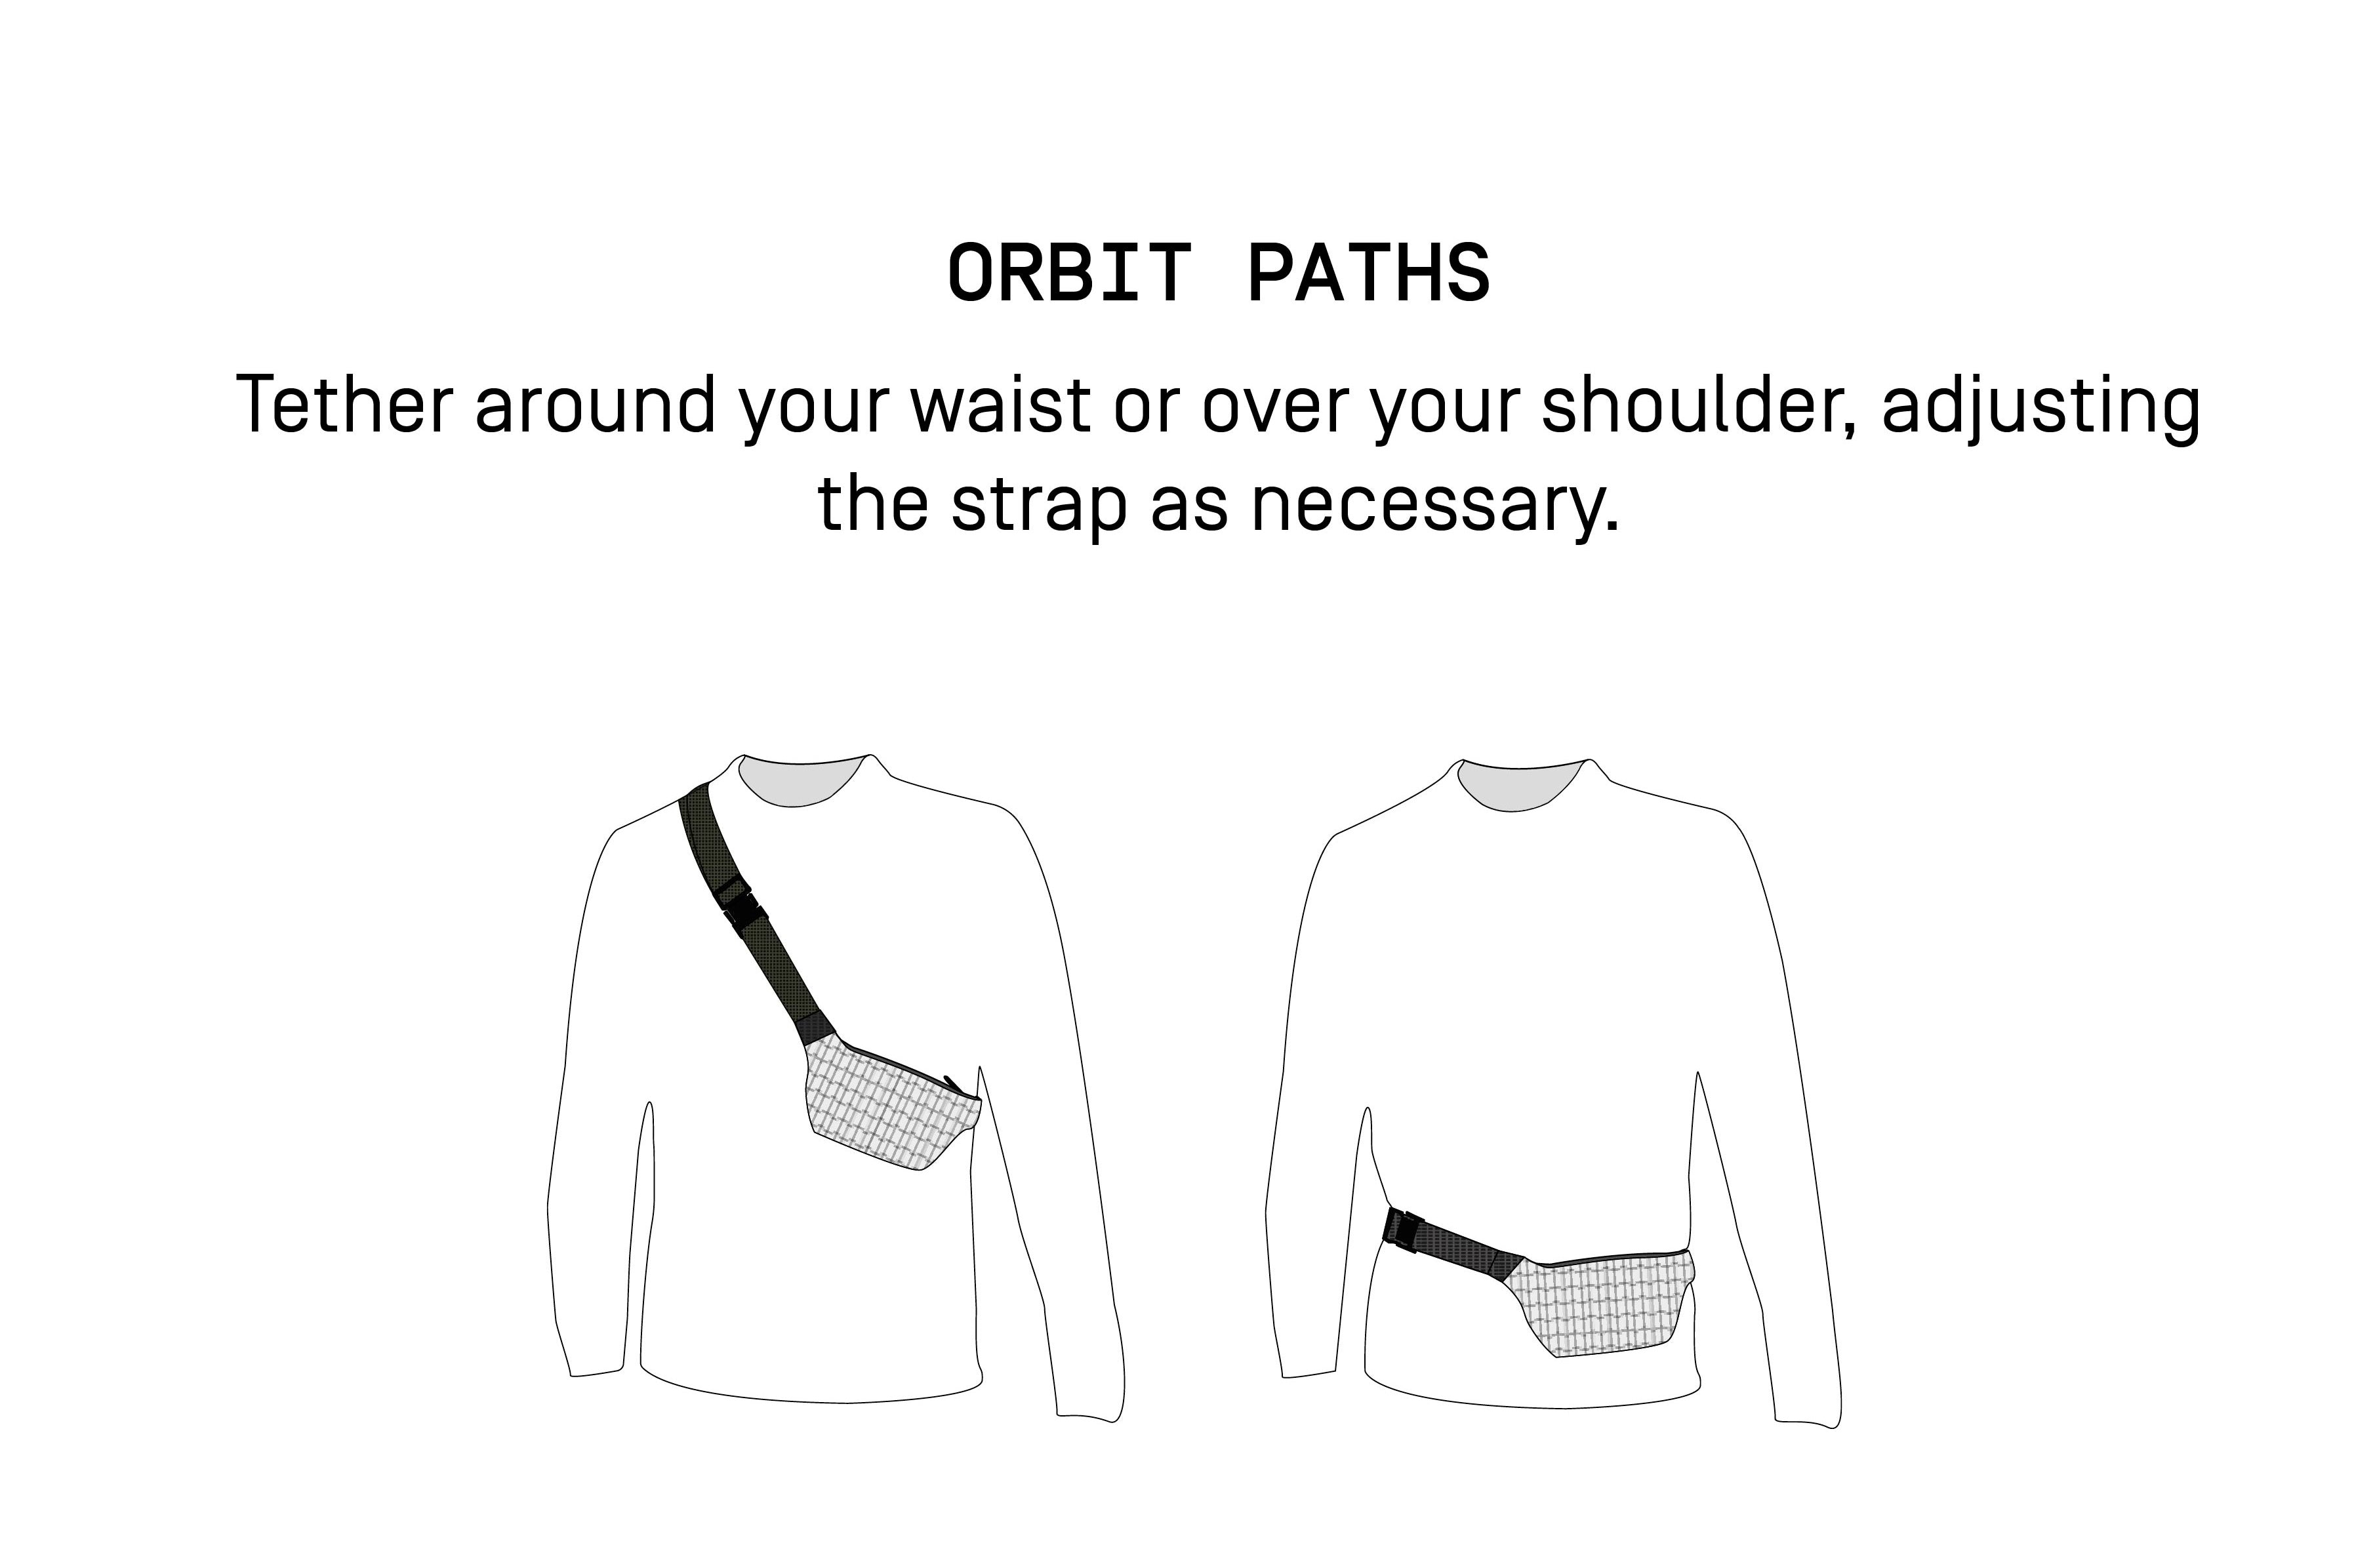 Tether around your waist or over your shoulder, adjusting the strap as necessary.